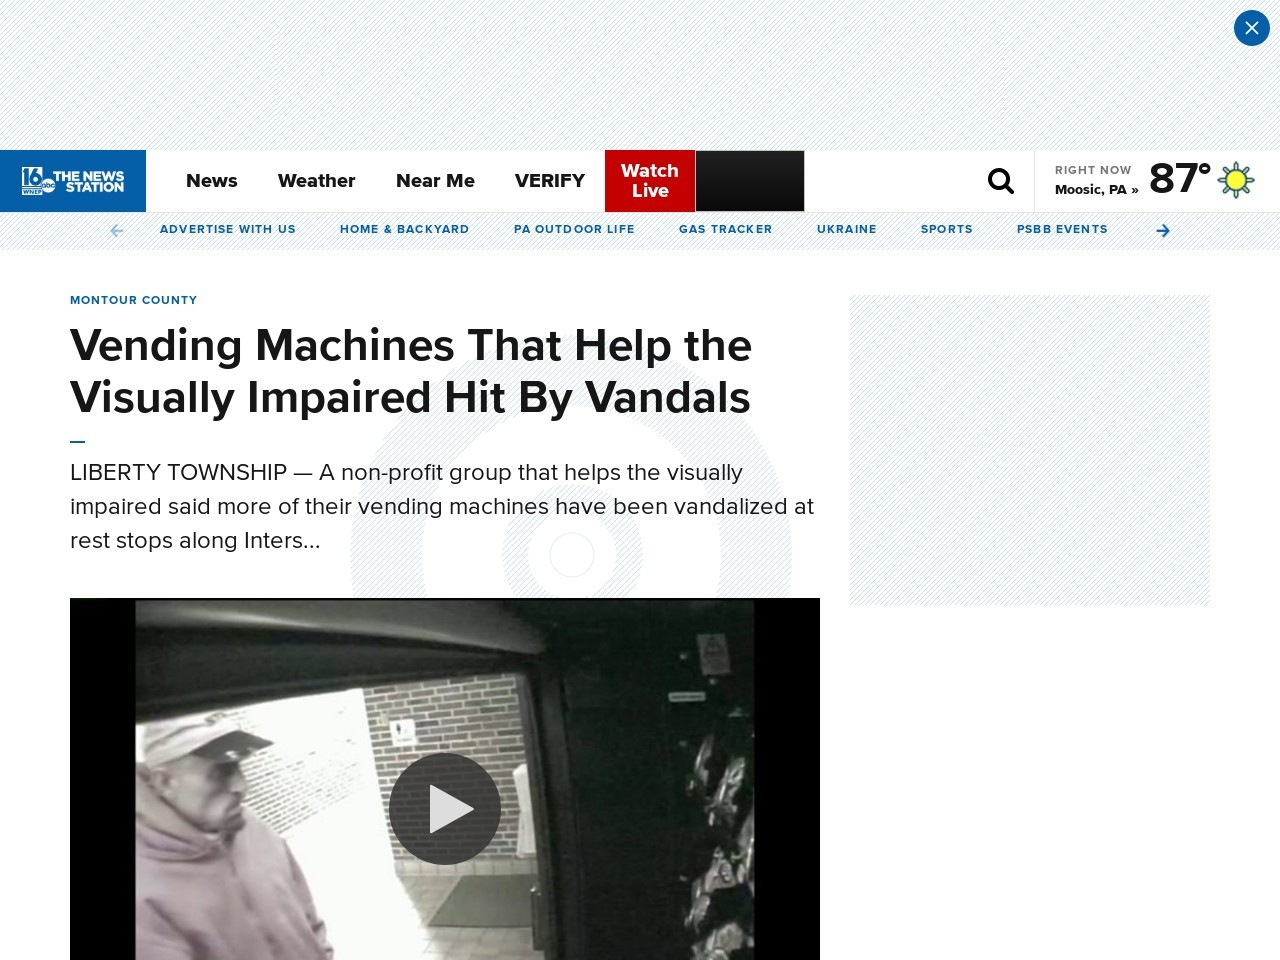 Vending Machines That Help the Visually Impaired Hit By Vandals